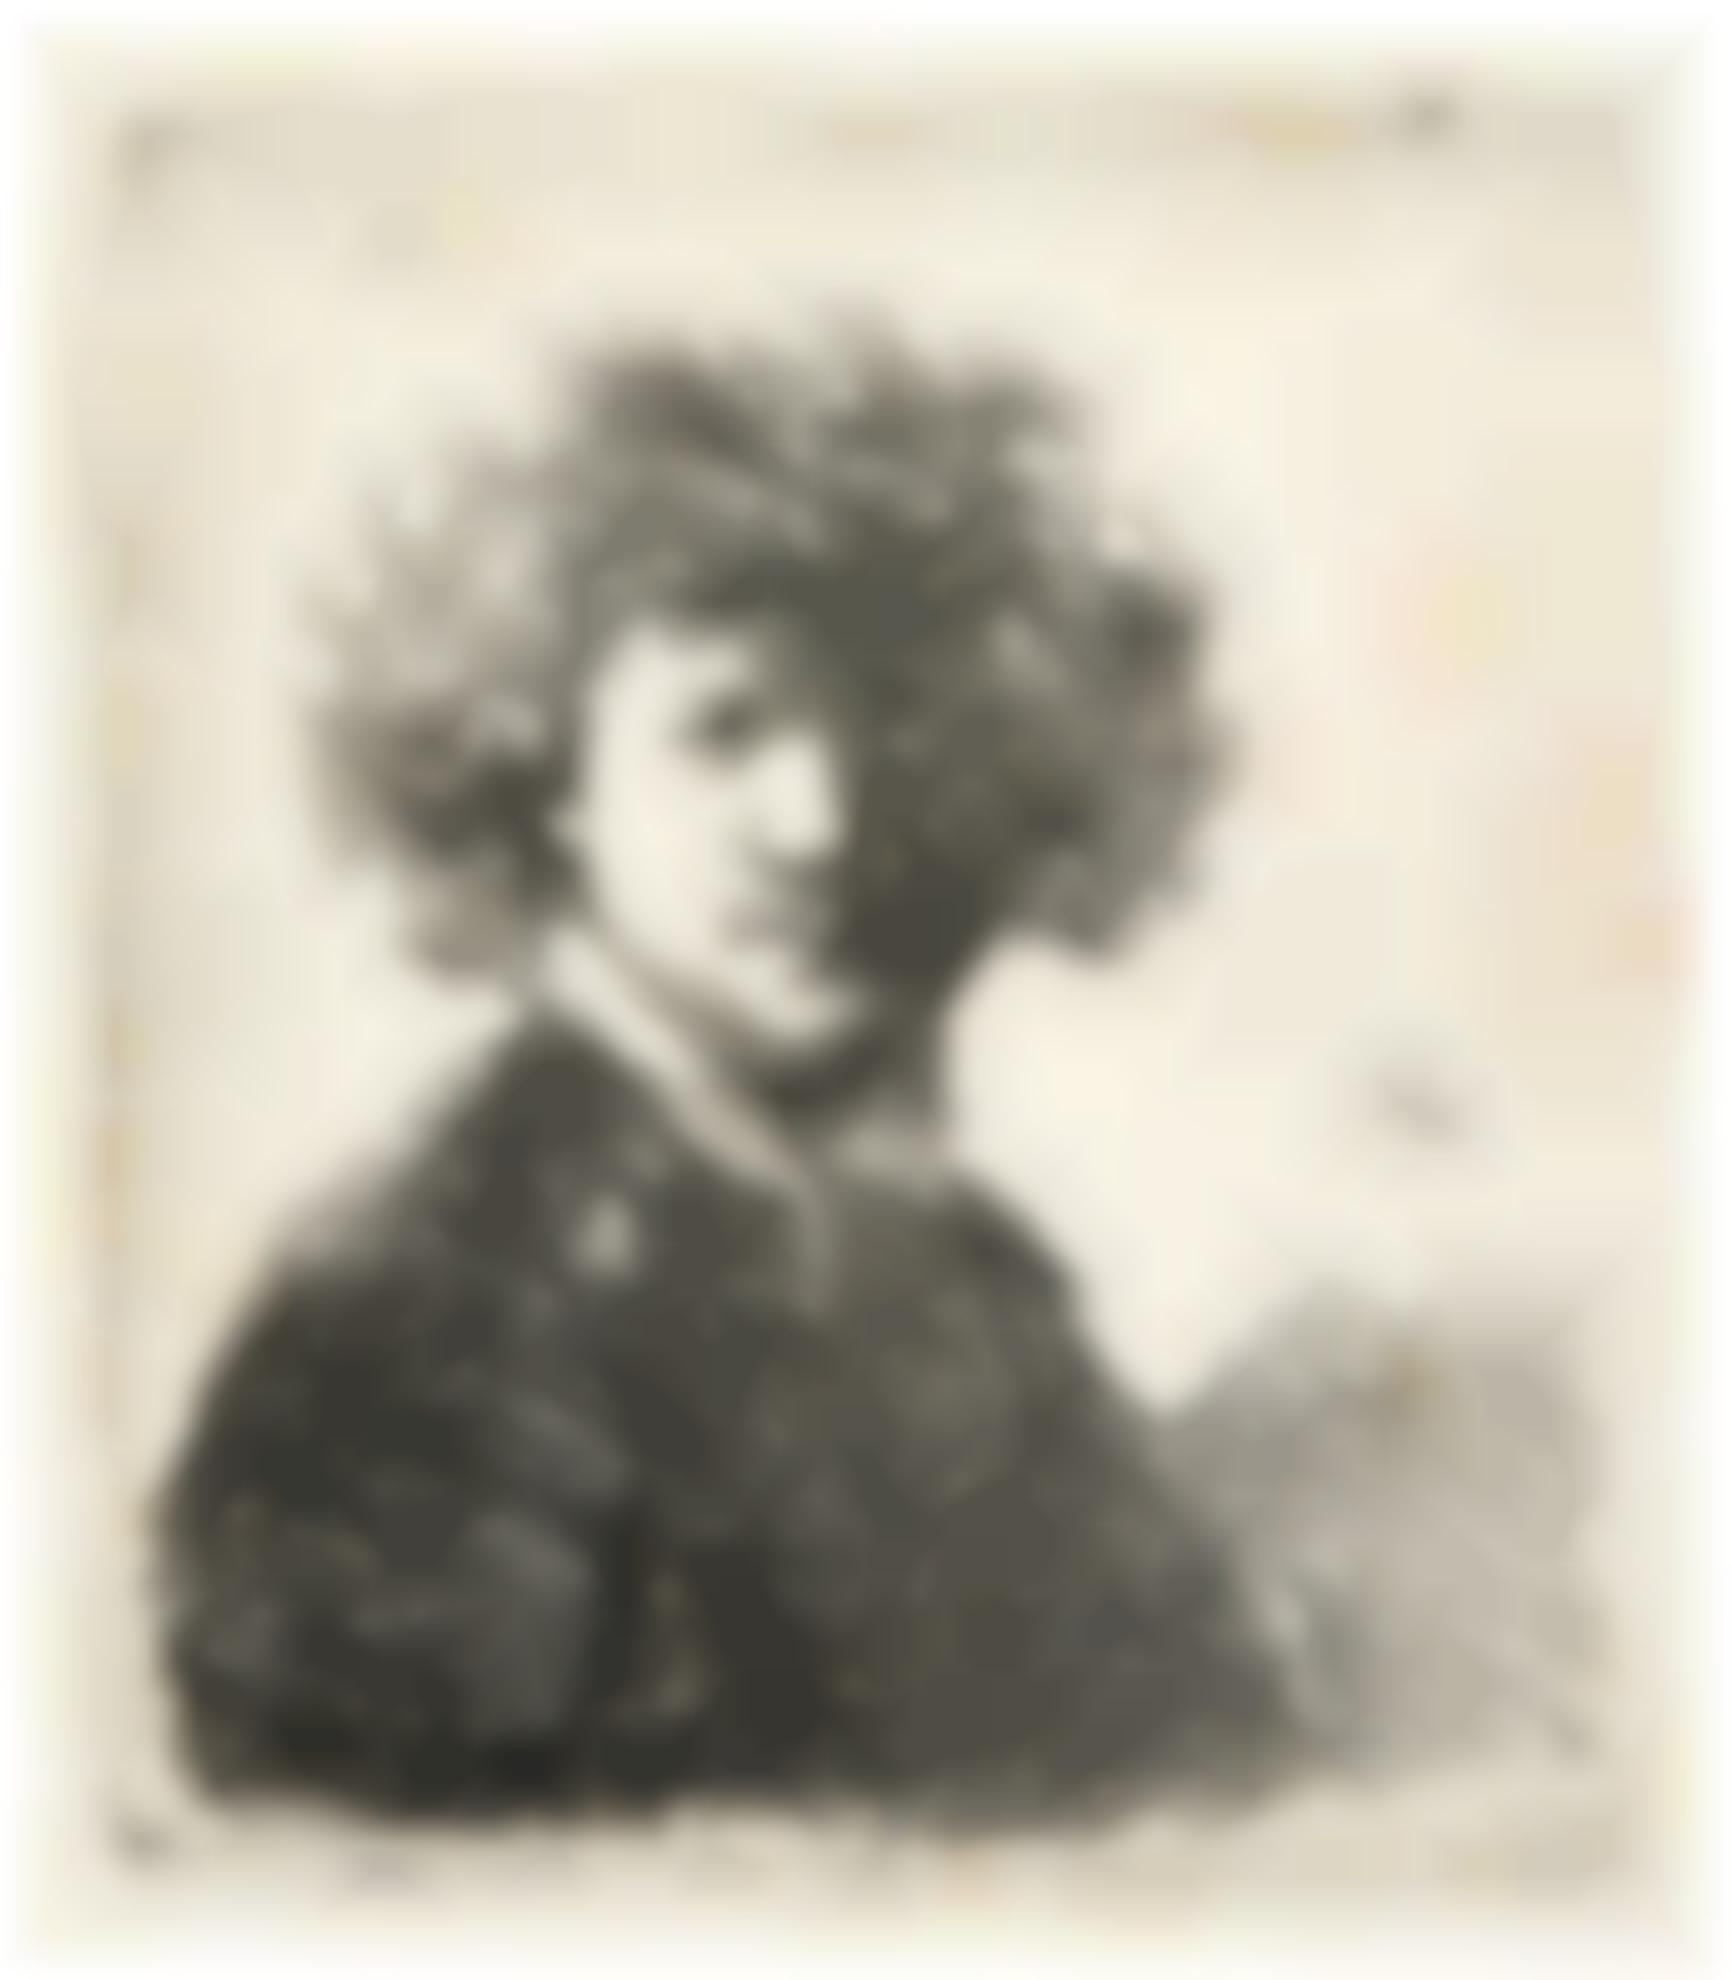 Rembrandt van Rijn-Self-Portrait With Curly Hair And White Collar: Bust (B., Holl. 1; New Holl. 66; H. 33)-1630